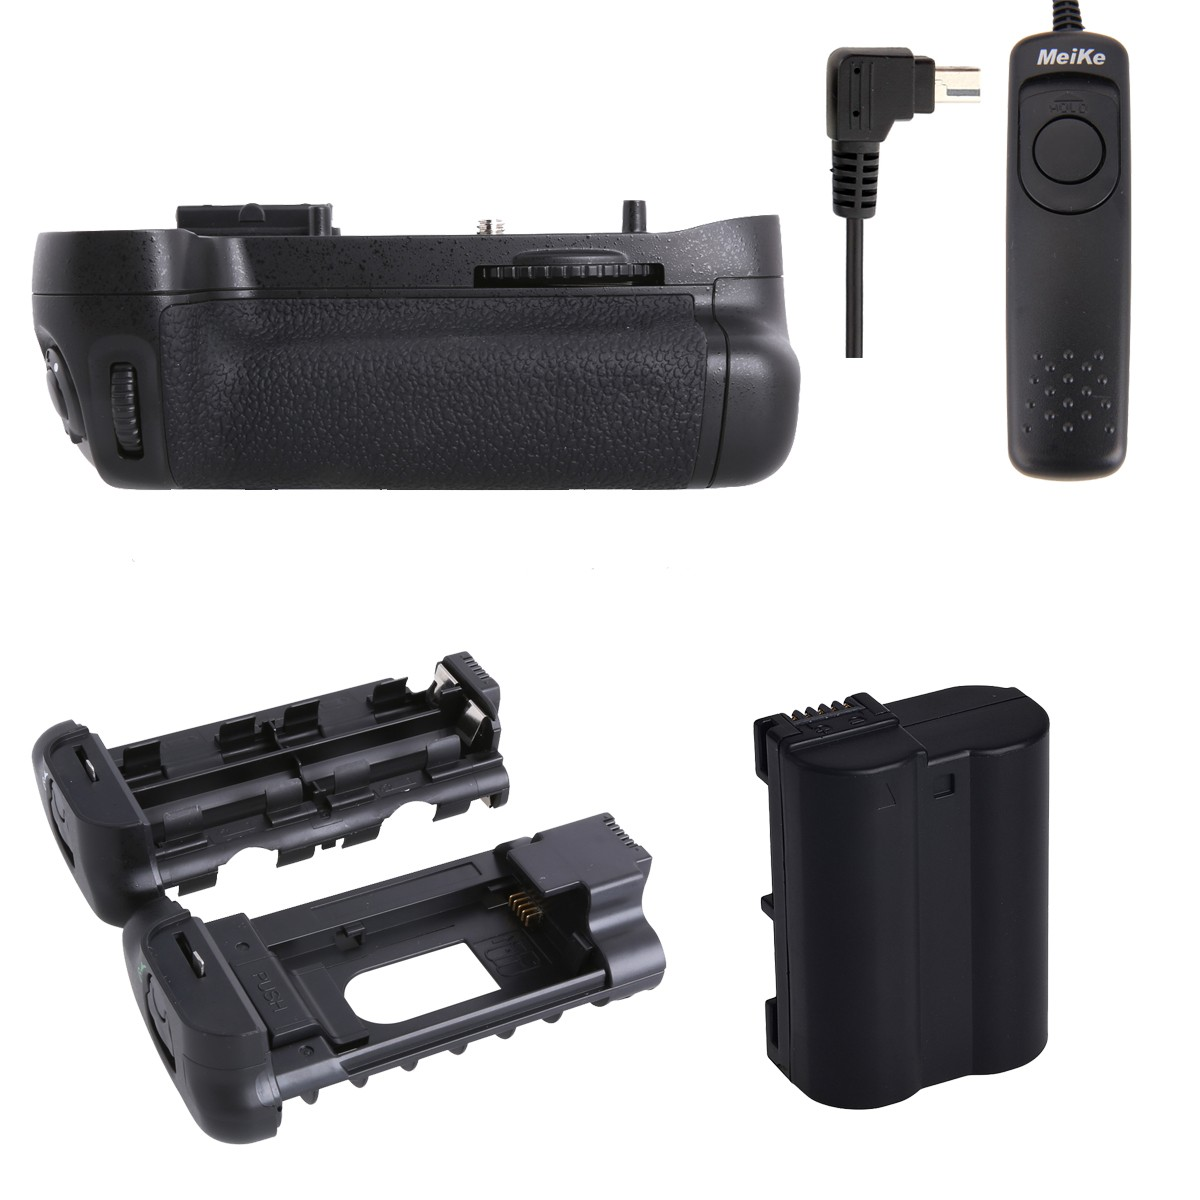 Meike MK-D7100 Battery Grip for Nikon D7100 as MB-D15 + EN-EL15 + Shutter release meike mk dr750 vertical battery grip pack holder for nikon d750 rechargeable li ion battery for nikon en el15 cleaning kit